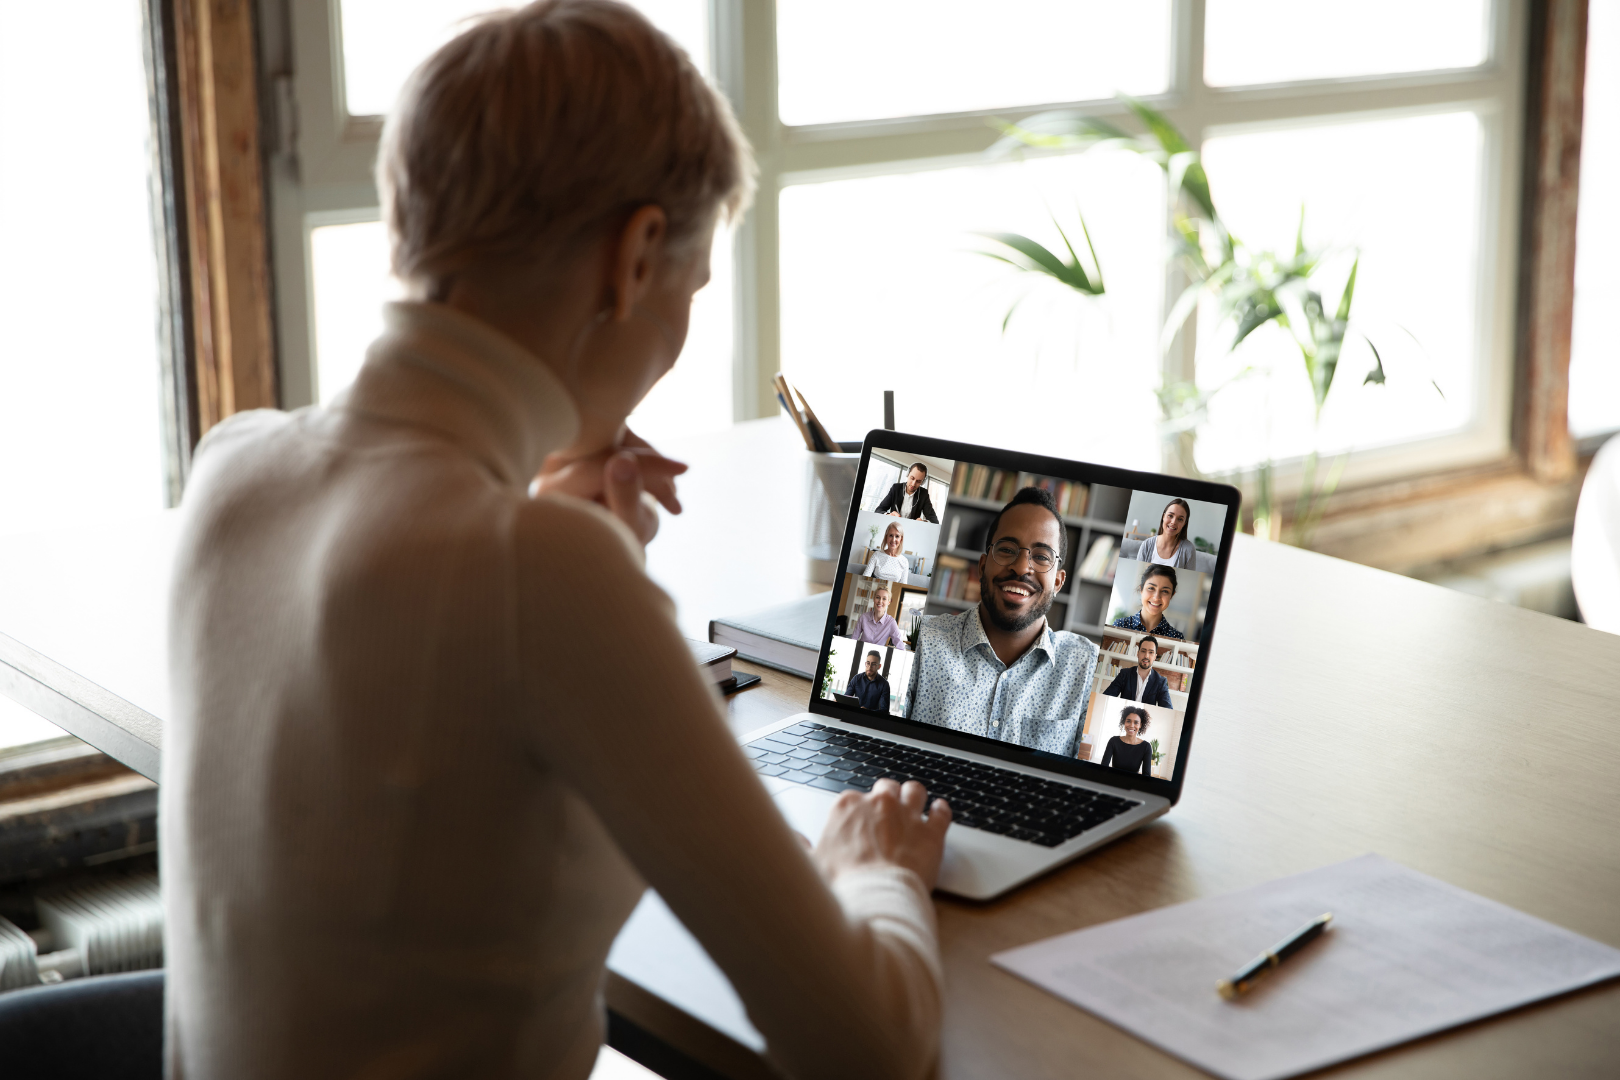 Caucasian women participating in online support group